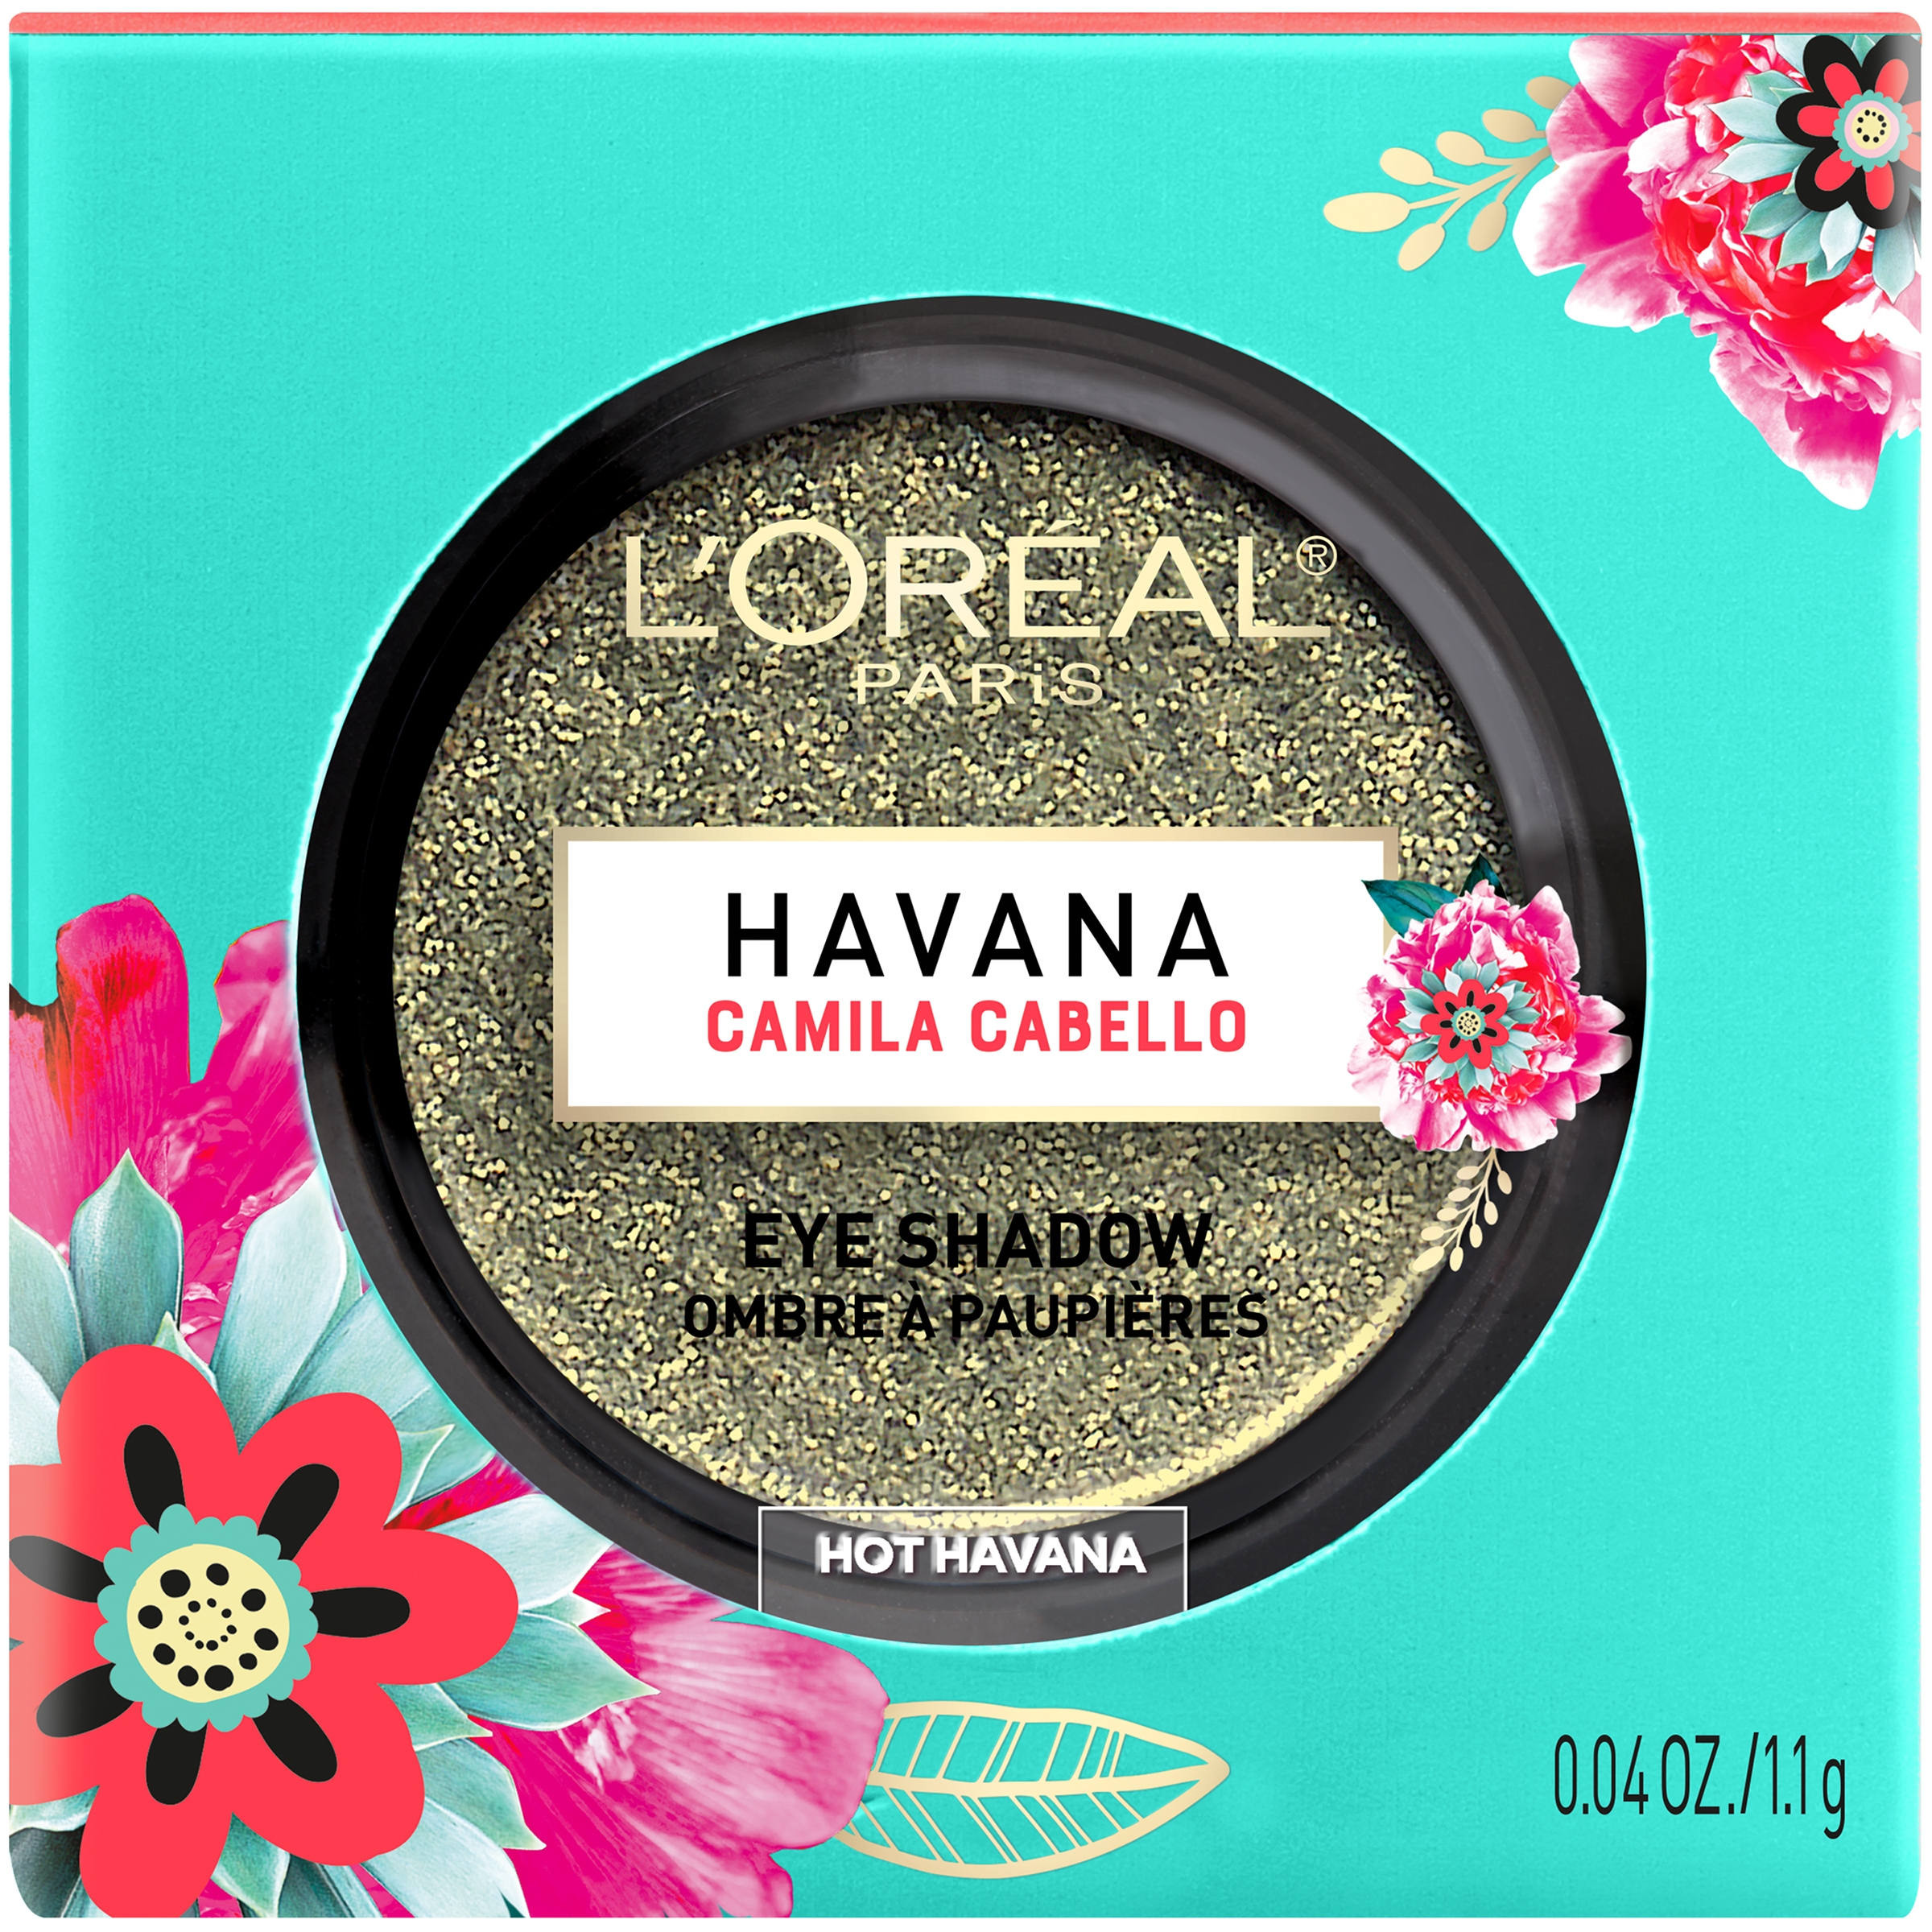 L'Oreal Paris X Camila Cabello Havana Eye Shadow, Hot Havana, 0.04 oz.